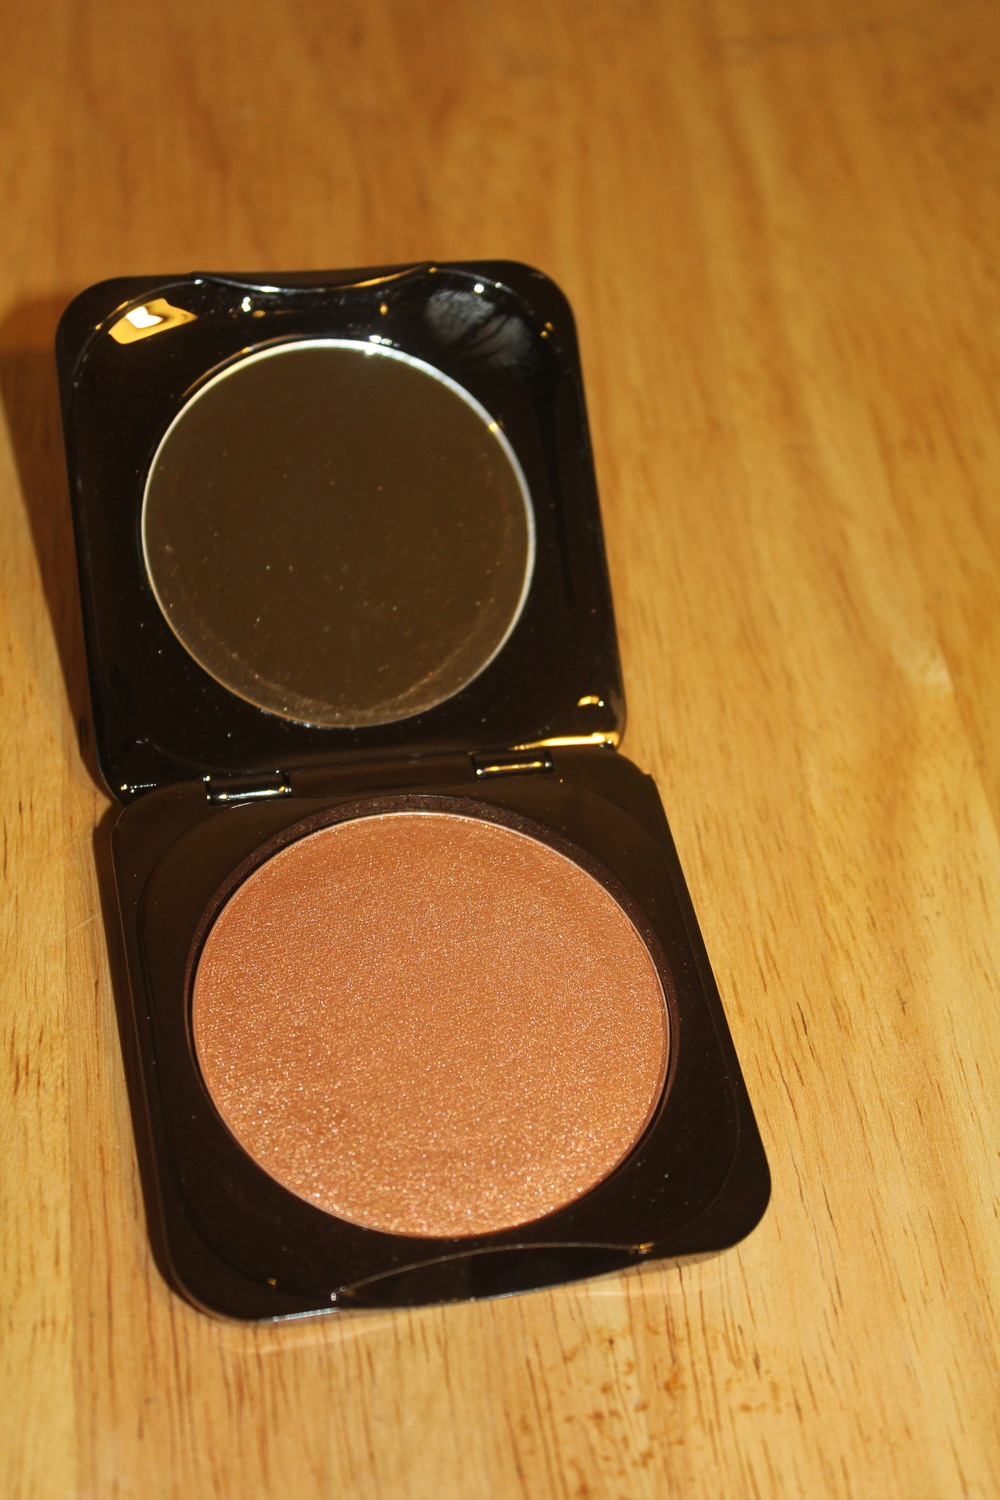 Fashion Fair highlighter in Metal